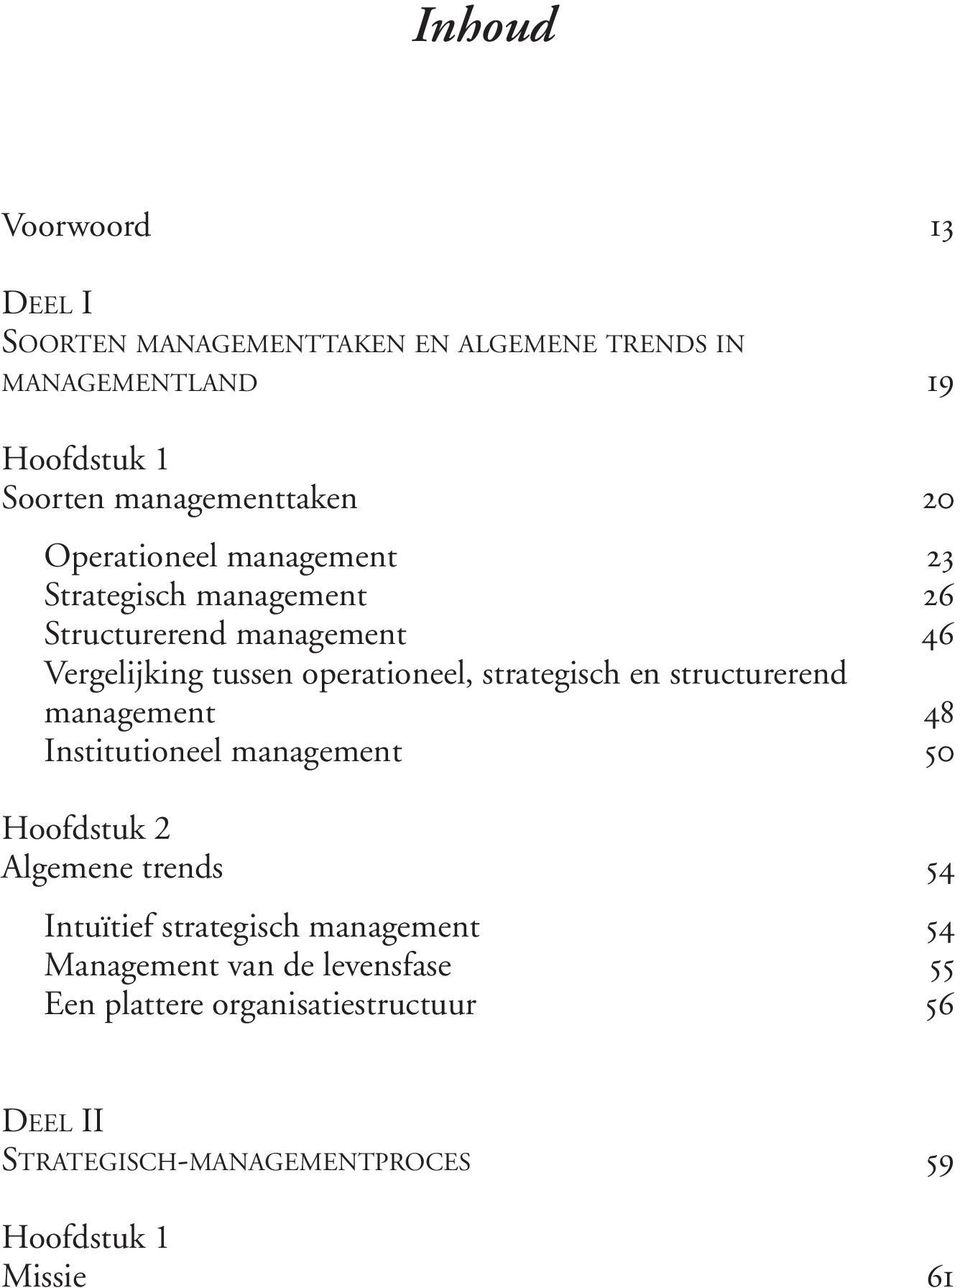 strategisch en structurerend management 48 Institutioneel management 50 Algemene trends 54 Intuïtief strategisch